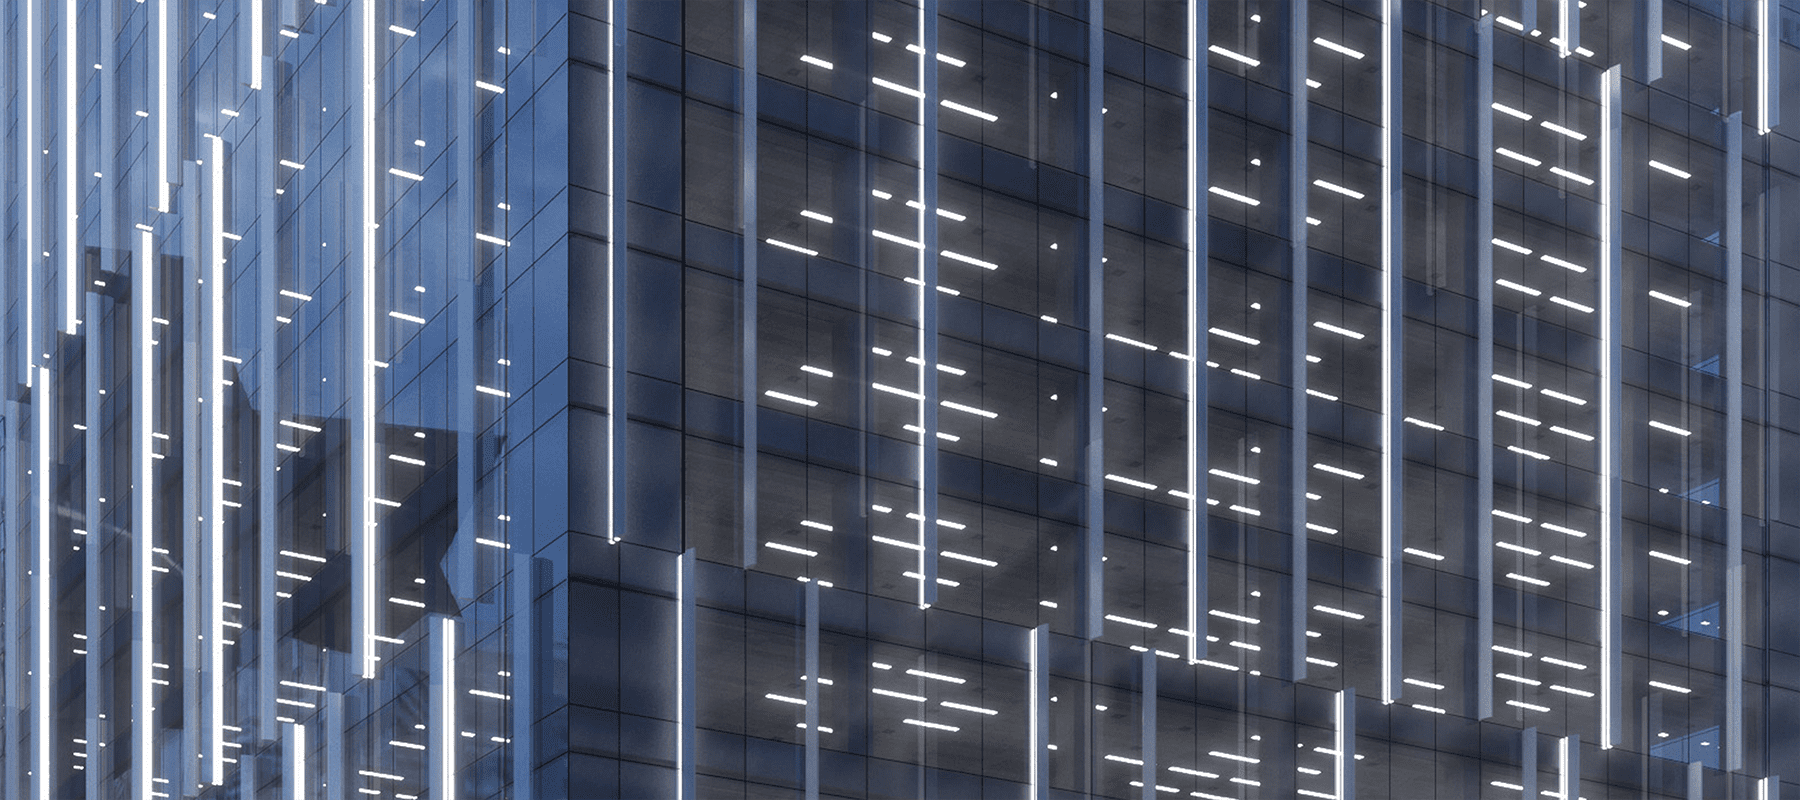 Rendering of the Updated office tower component of 60 Bloor St. W. where Holt Renfrew's headquarters are located, via Morguard